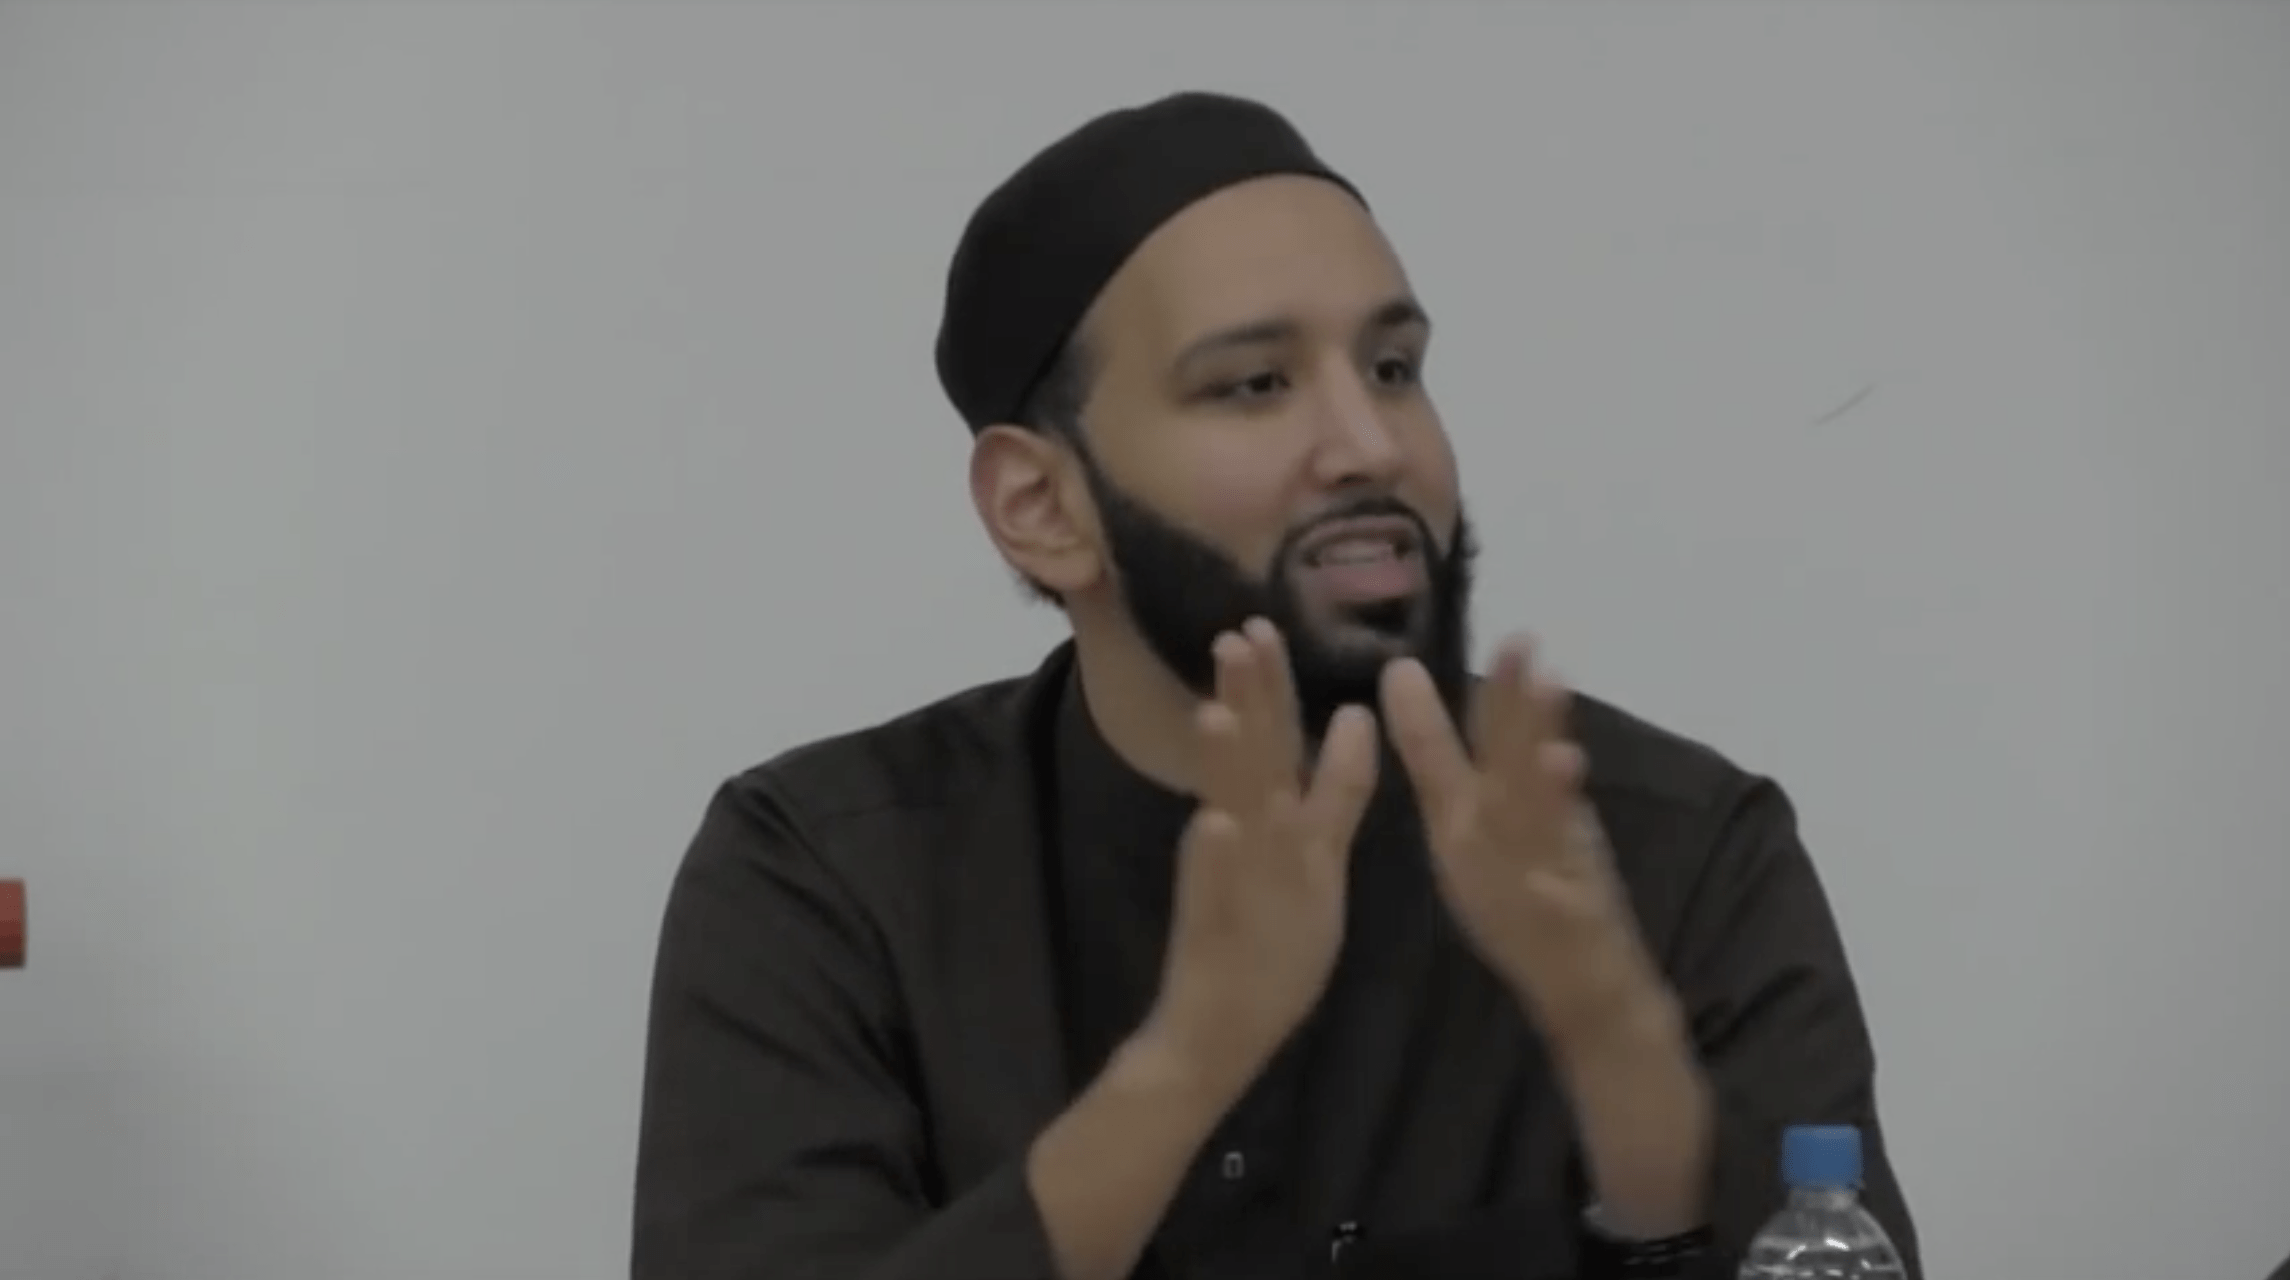 Omar Suleiman – Art of Forgiveness